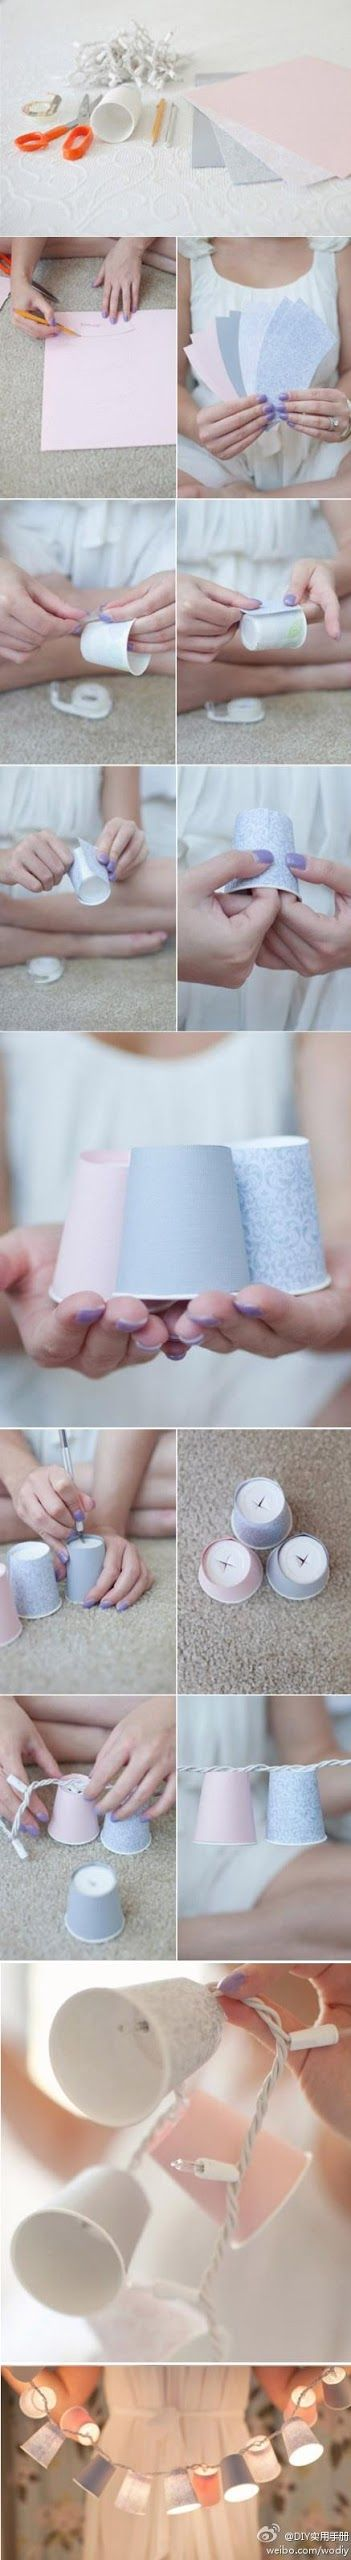 Make light shades with paper cups